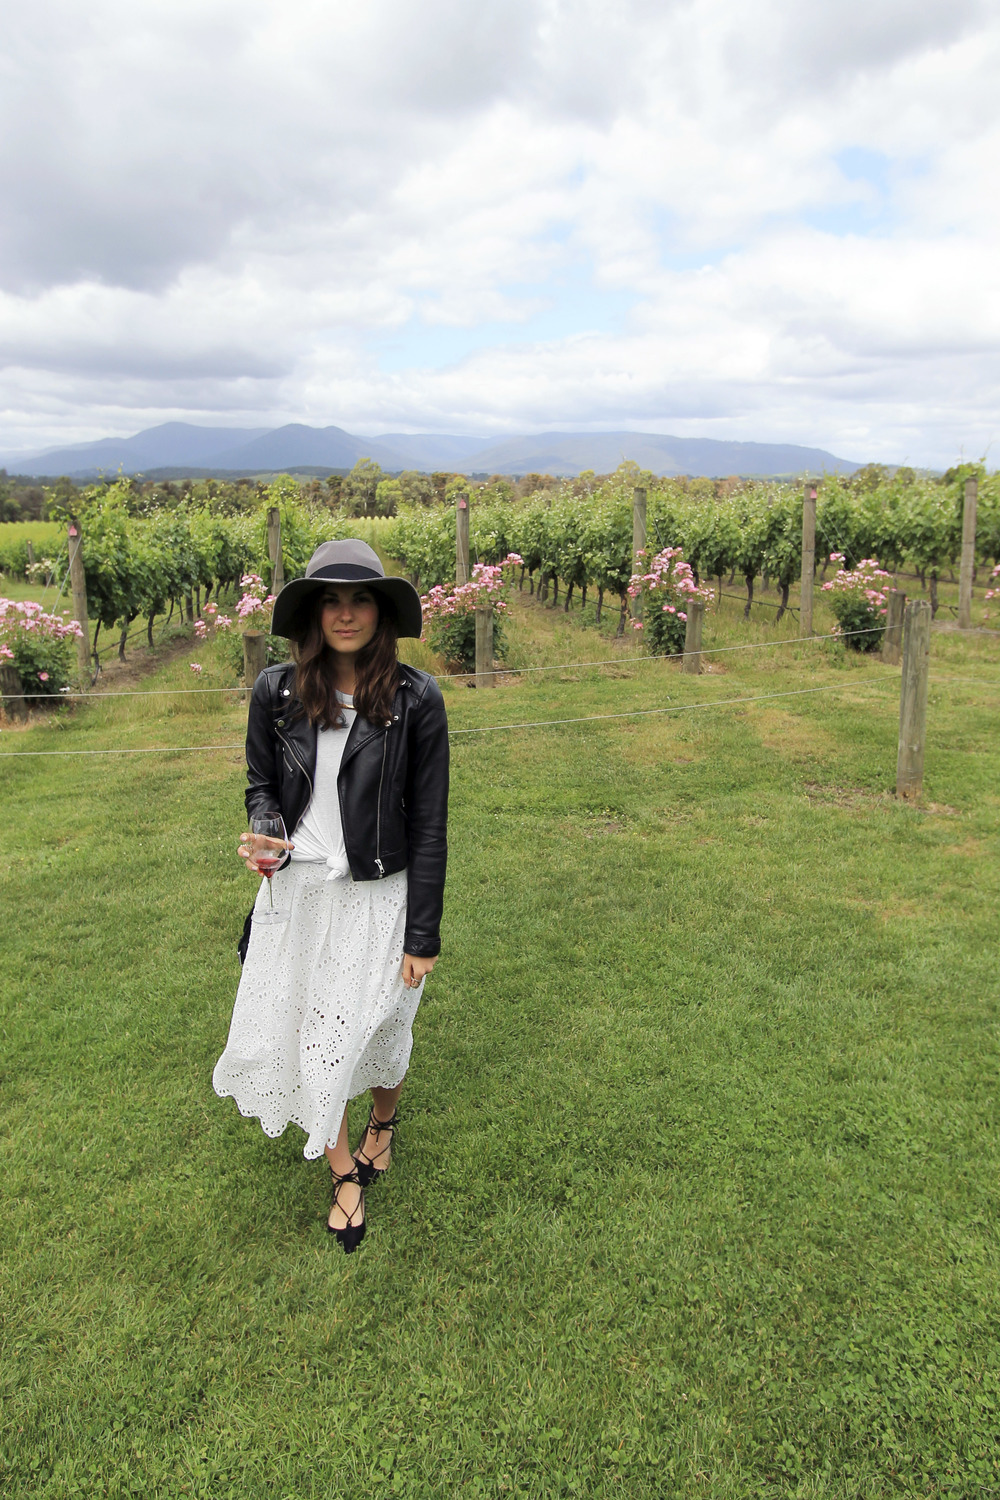 hm-leather-moto-jacket-topshop-lace-up-ghillie-tie-flats-forever-21-floppy-hat-winery-tour-yarra-valley-australia-fashion.jpg